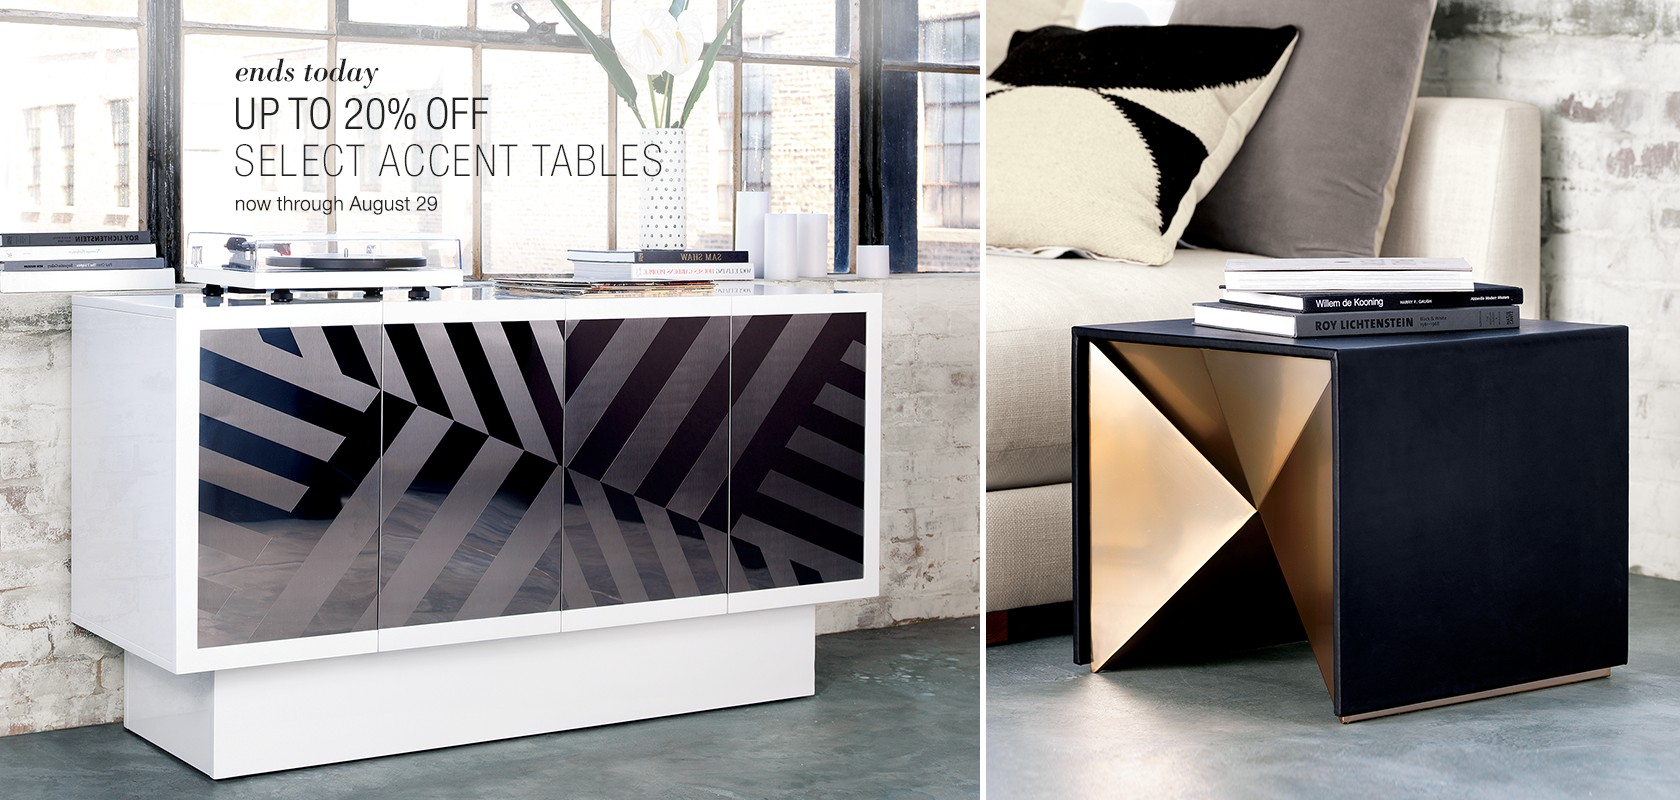 up to 20% off select accent tables. ends today